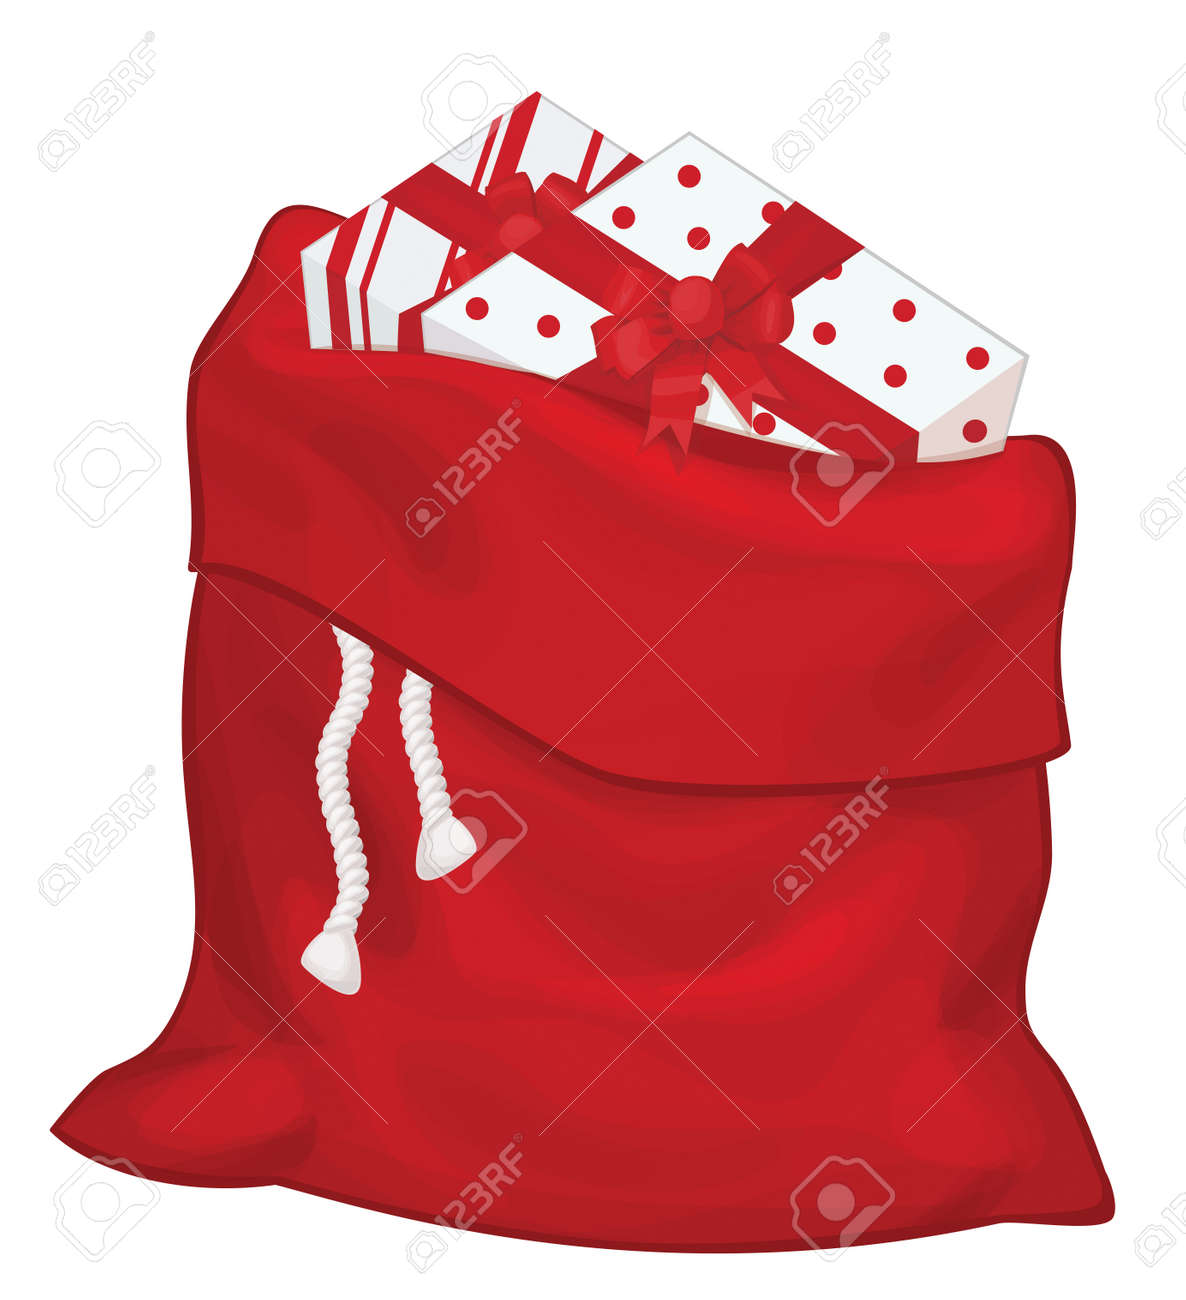 Vector Santa Claus Bag With Gifts Isolated Royalty Free Cliparts Vectors And Stock Illustration Image 85278972